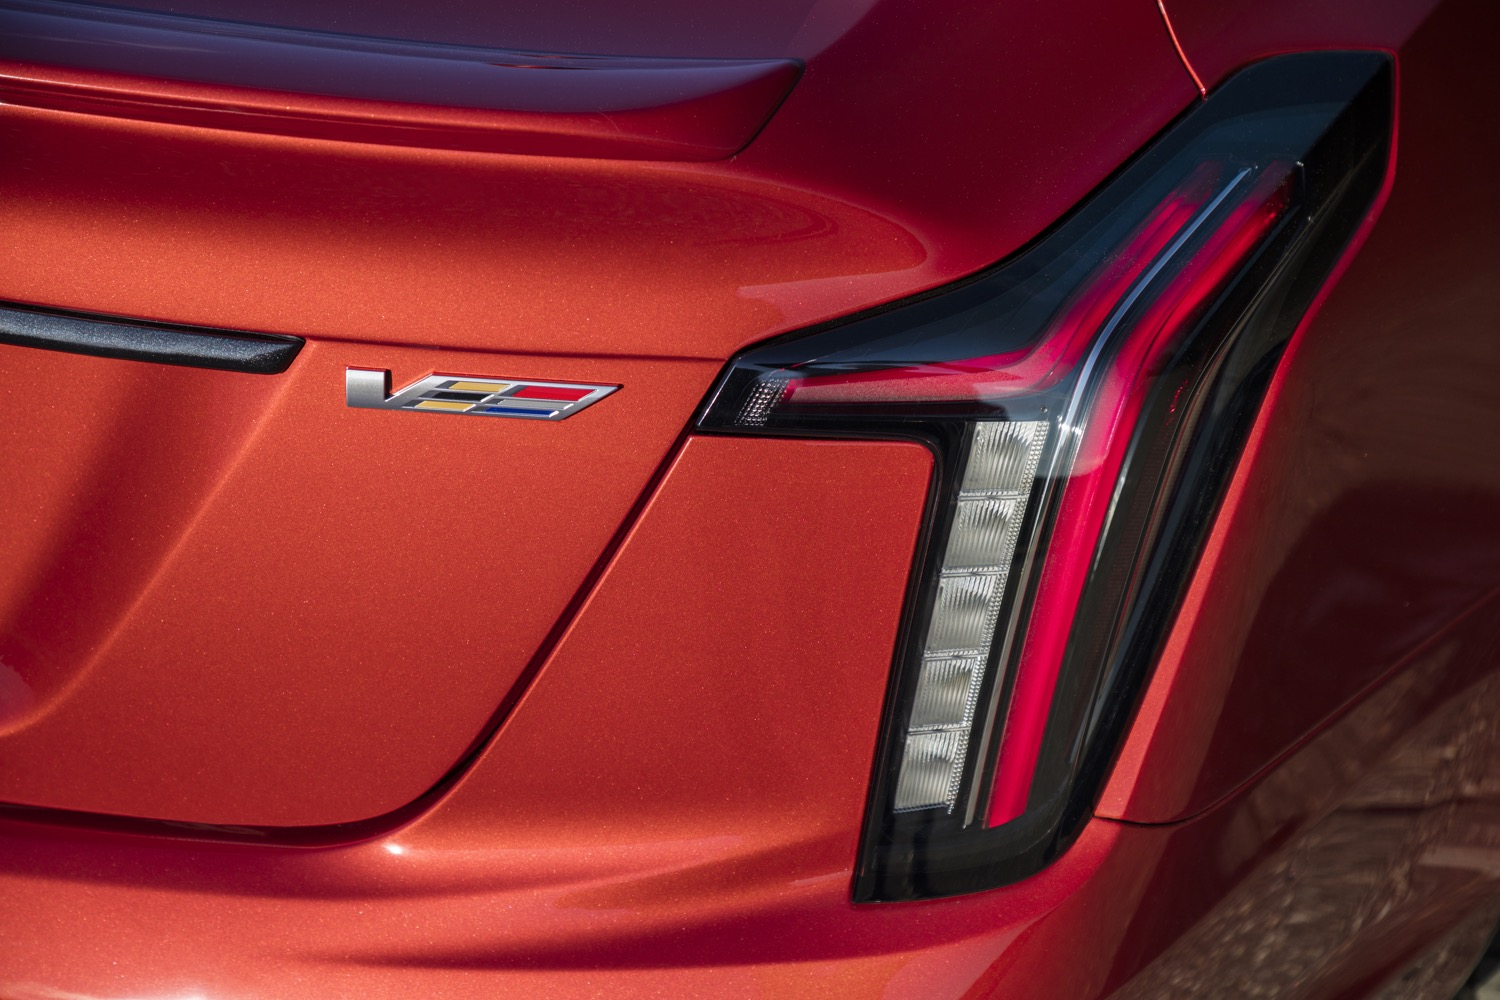 All New 2020 Cadillac Ct5 V Revealed In Detroit